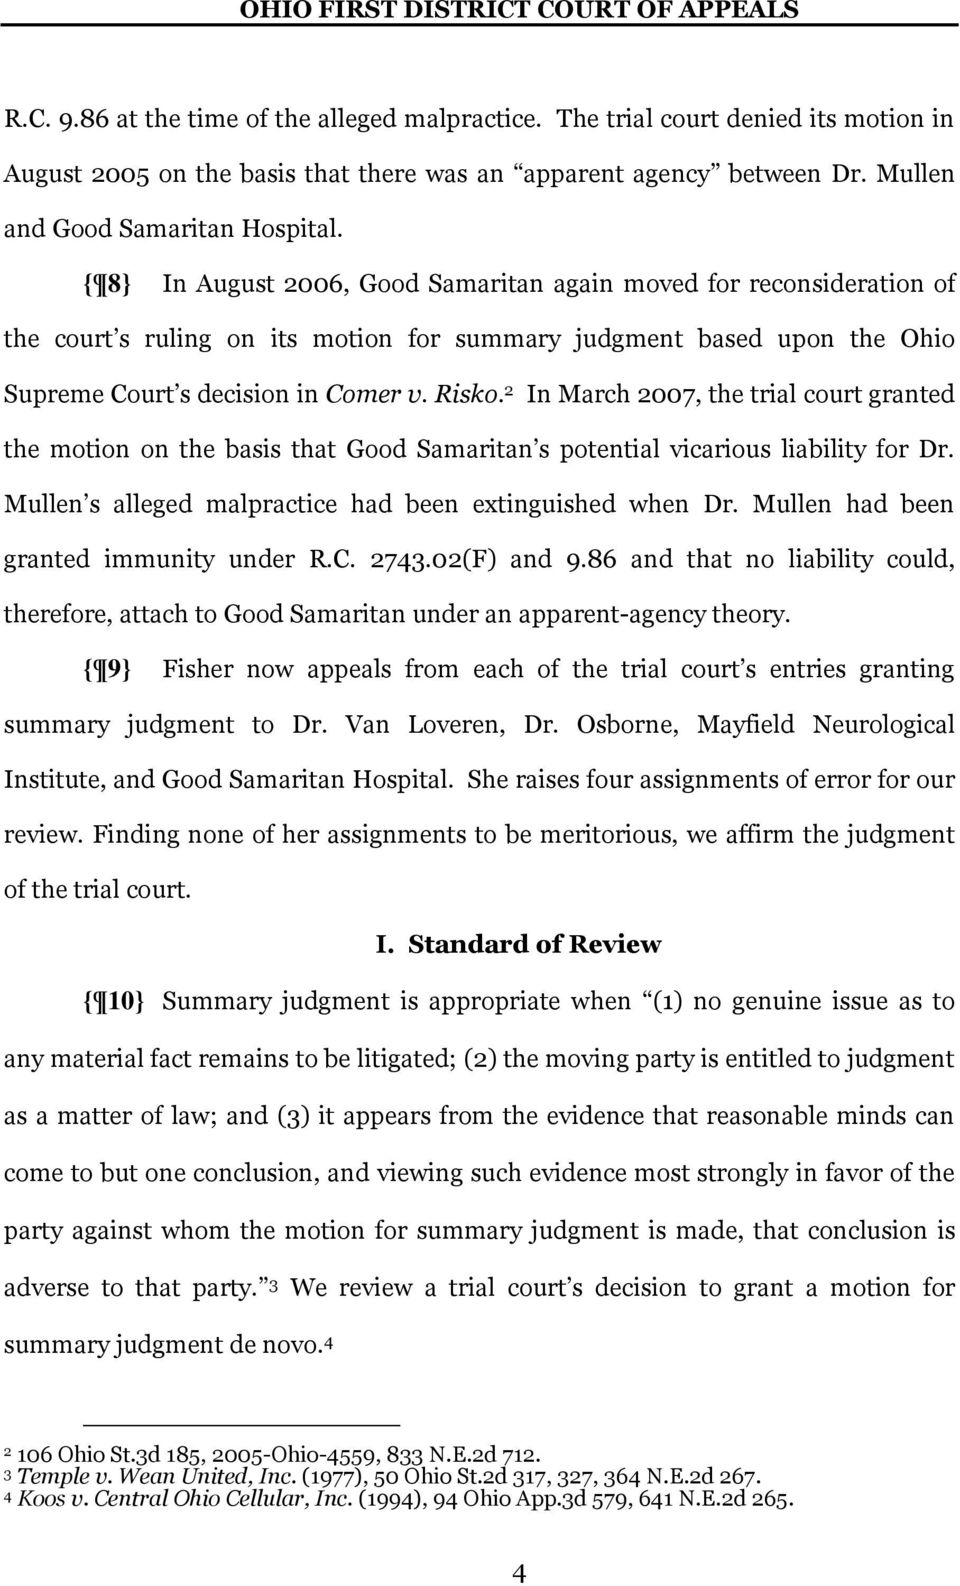 2 In March 2007, the trial court granted the motion on the basis that Good Samaritan s potential vicarious liability for Dr. Mullen s alleged malpractice had been extinguished when Dr.